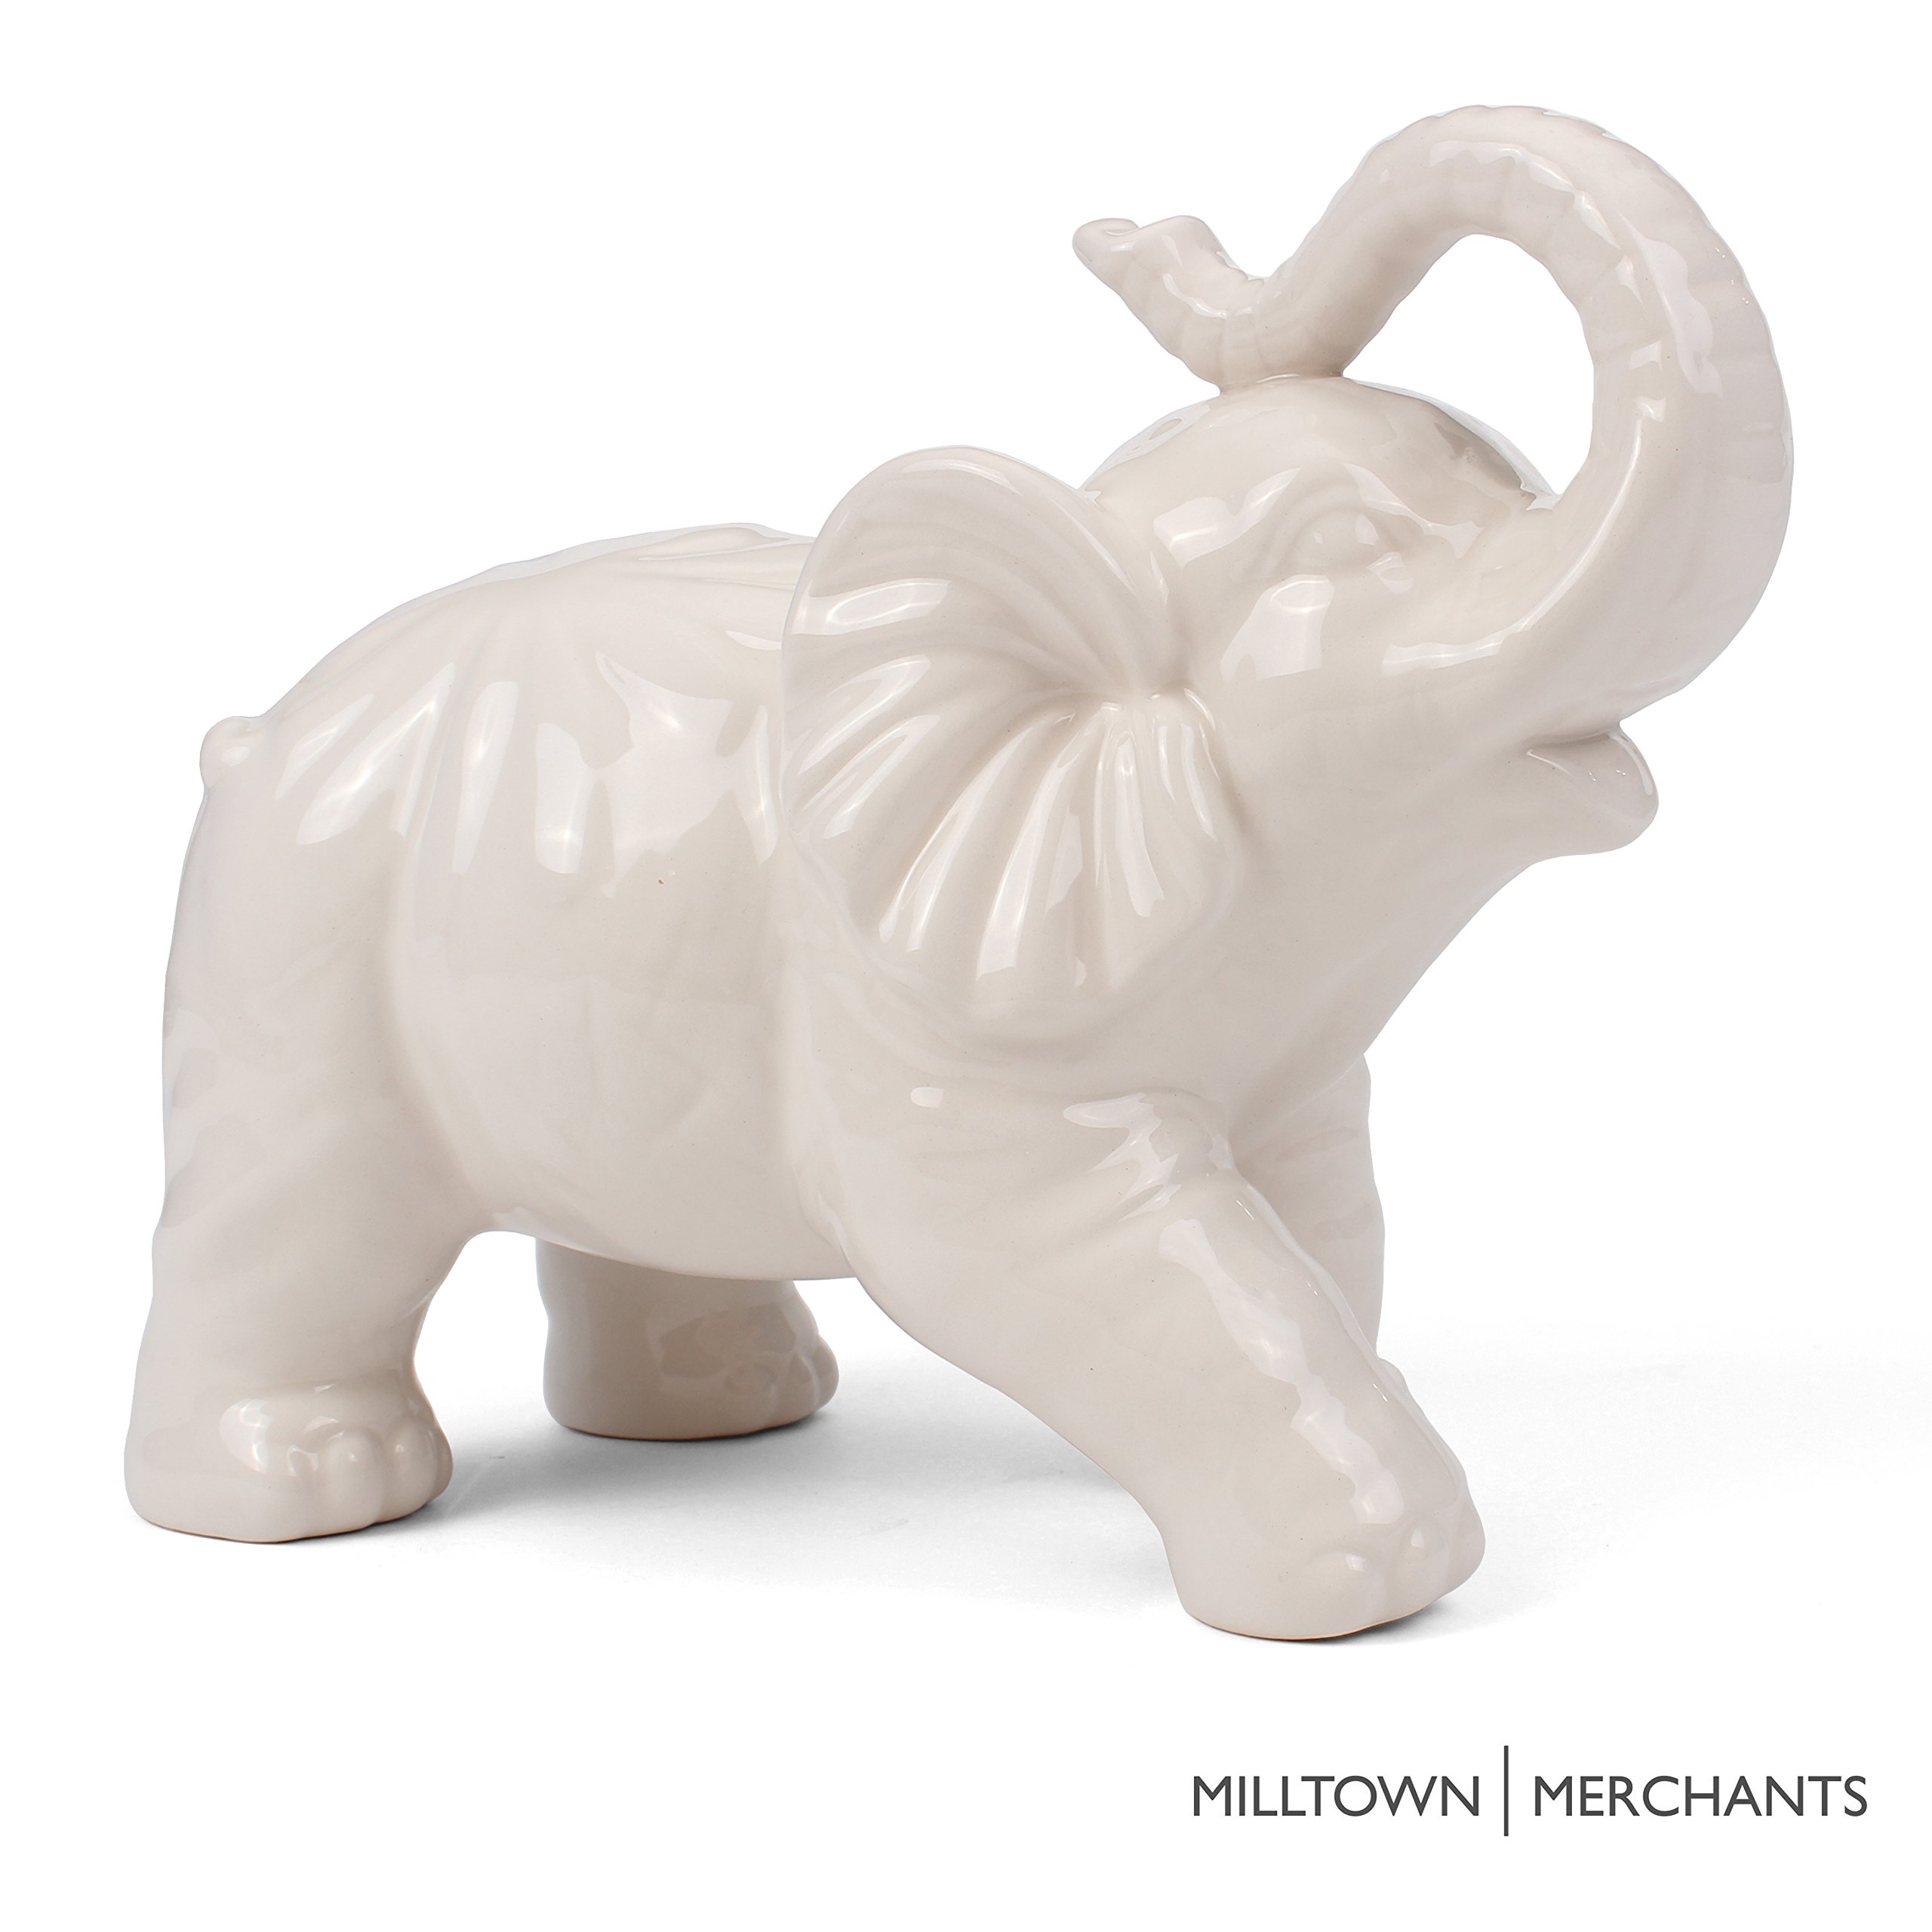 Wonderful Milltown Merchants Trade; Elephant Figurine   Ceramic Elephant   Elephant  Decor   White Ceramic Elephant